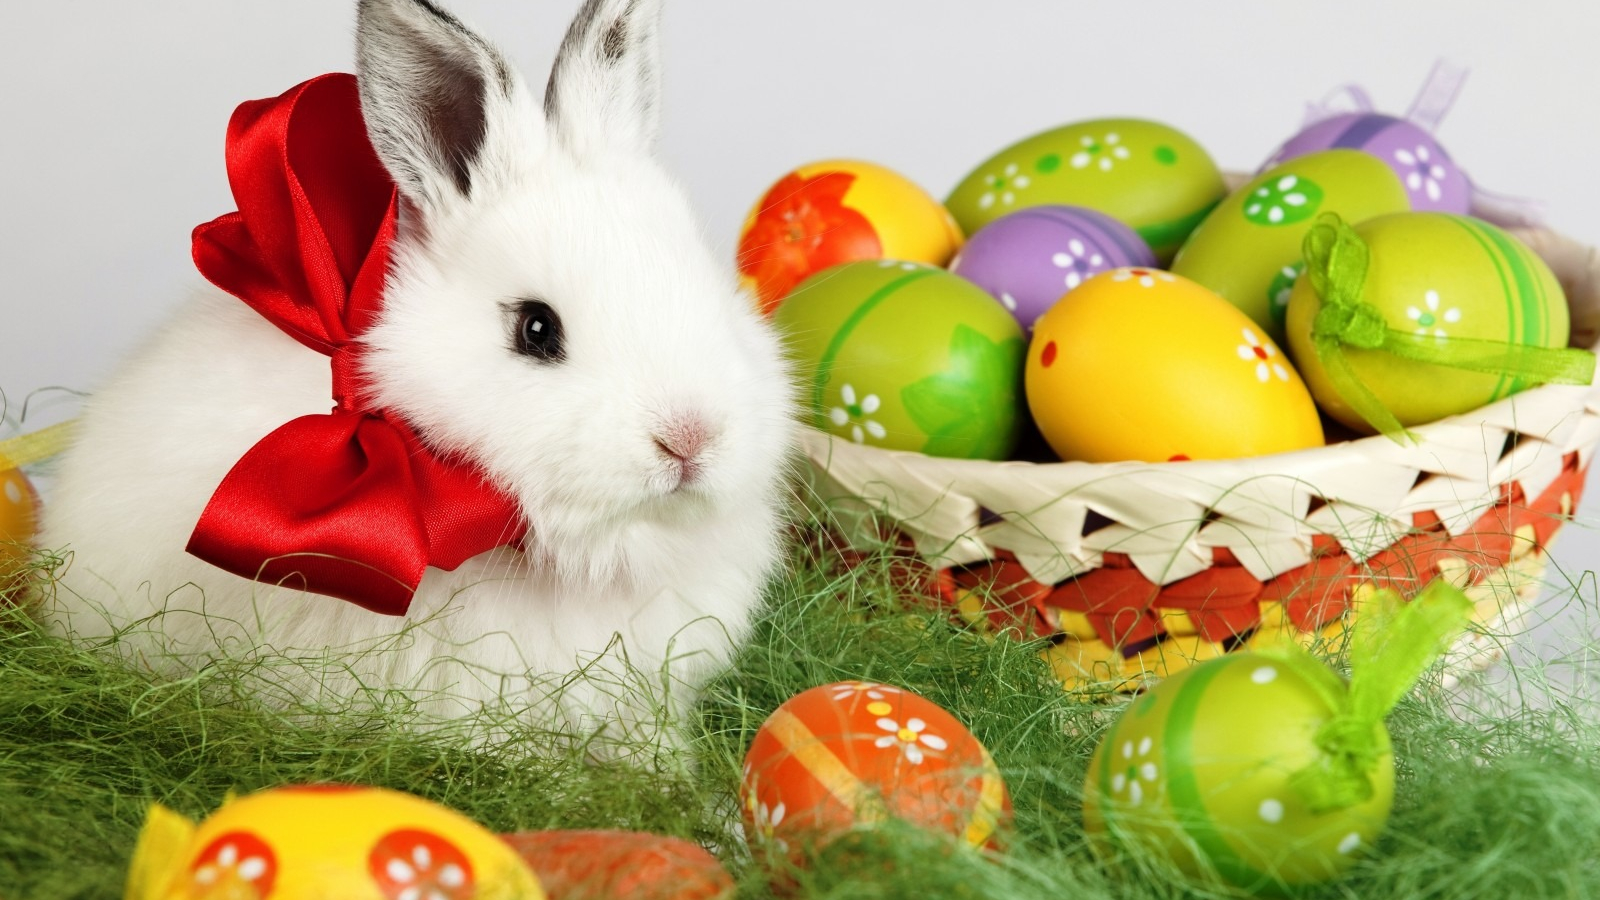 Free Download Easter Bunny Desktop Wallpaper 1600x1200 For Your